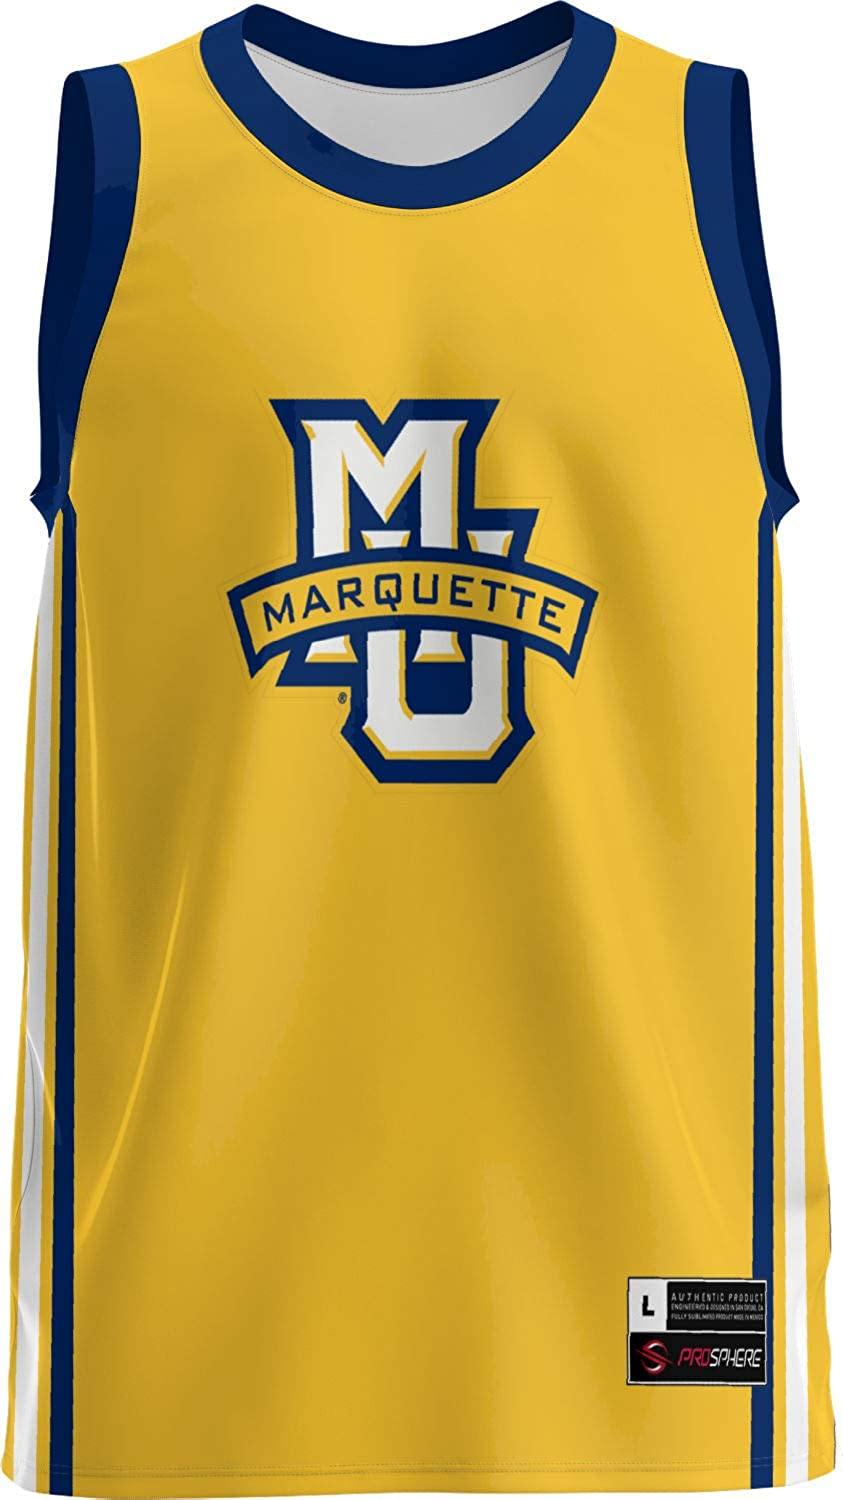 e83dabb9295 Amazon.com  ProSphere Marquette University Men s Replica Basketball Jersey  - Classic  Clothing